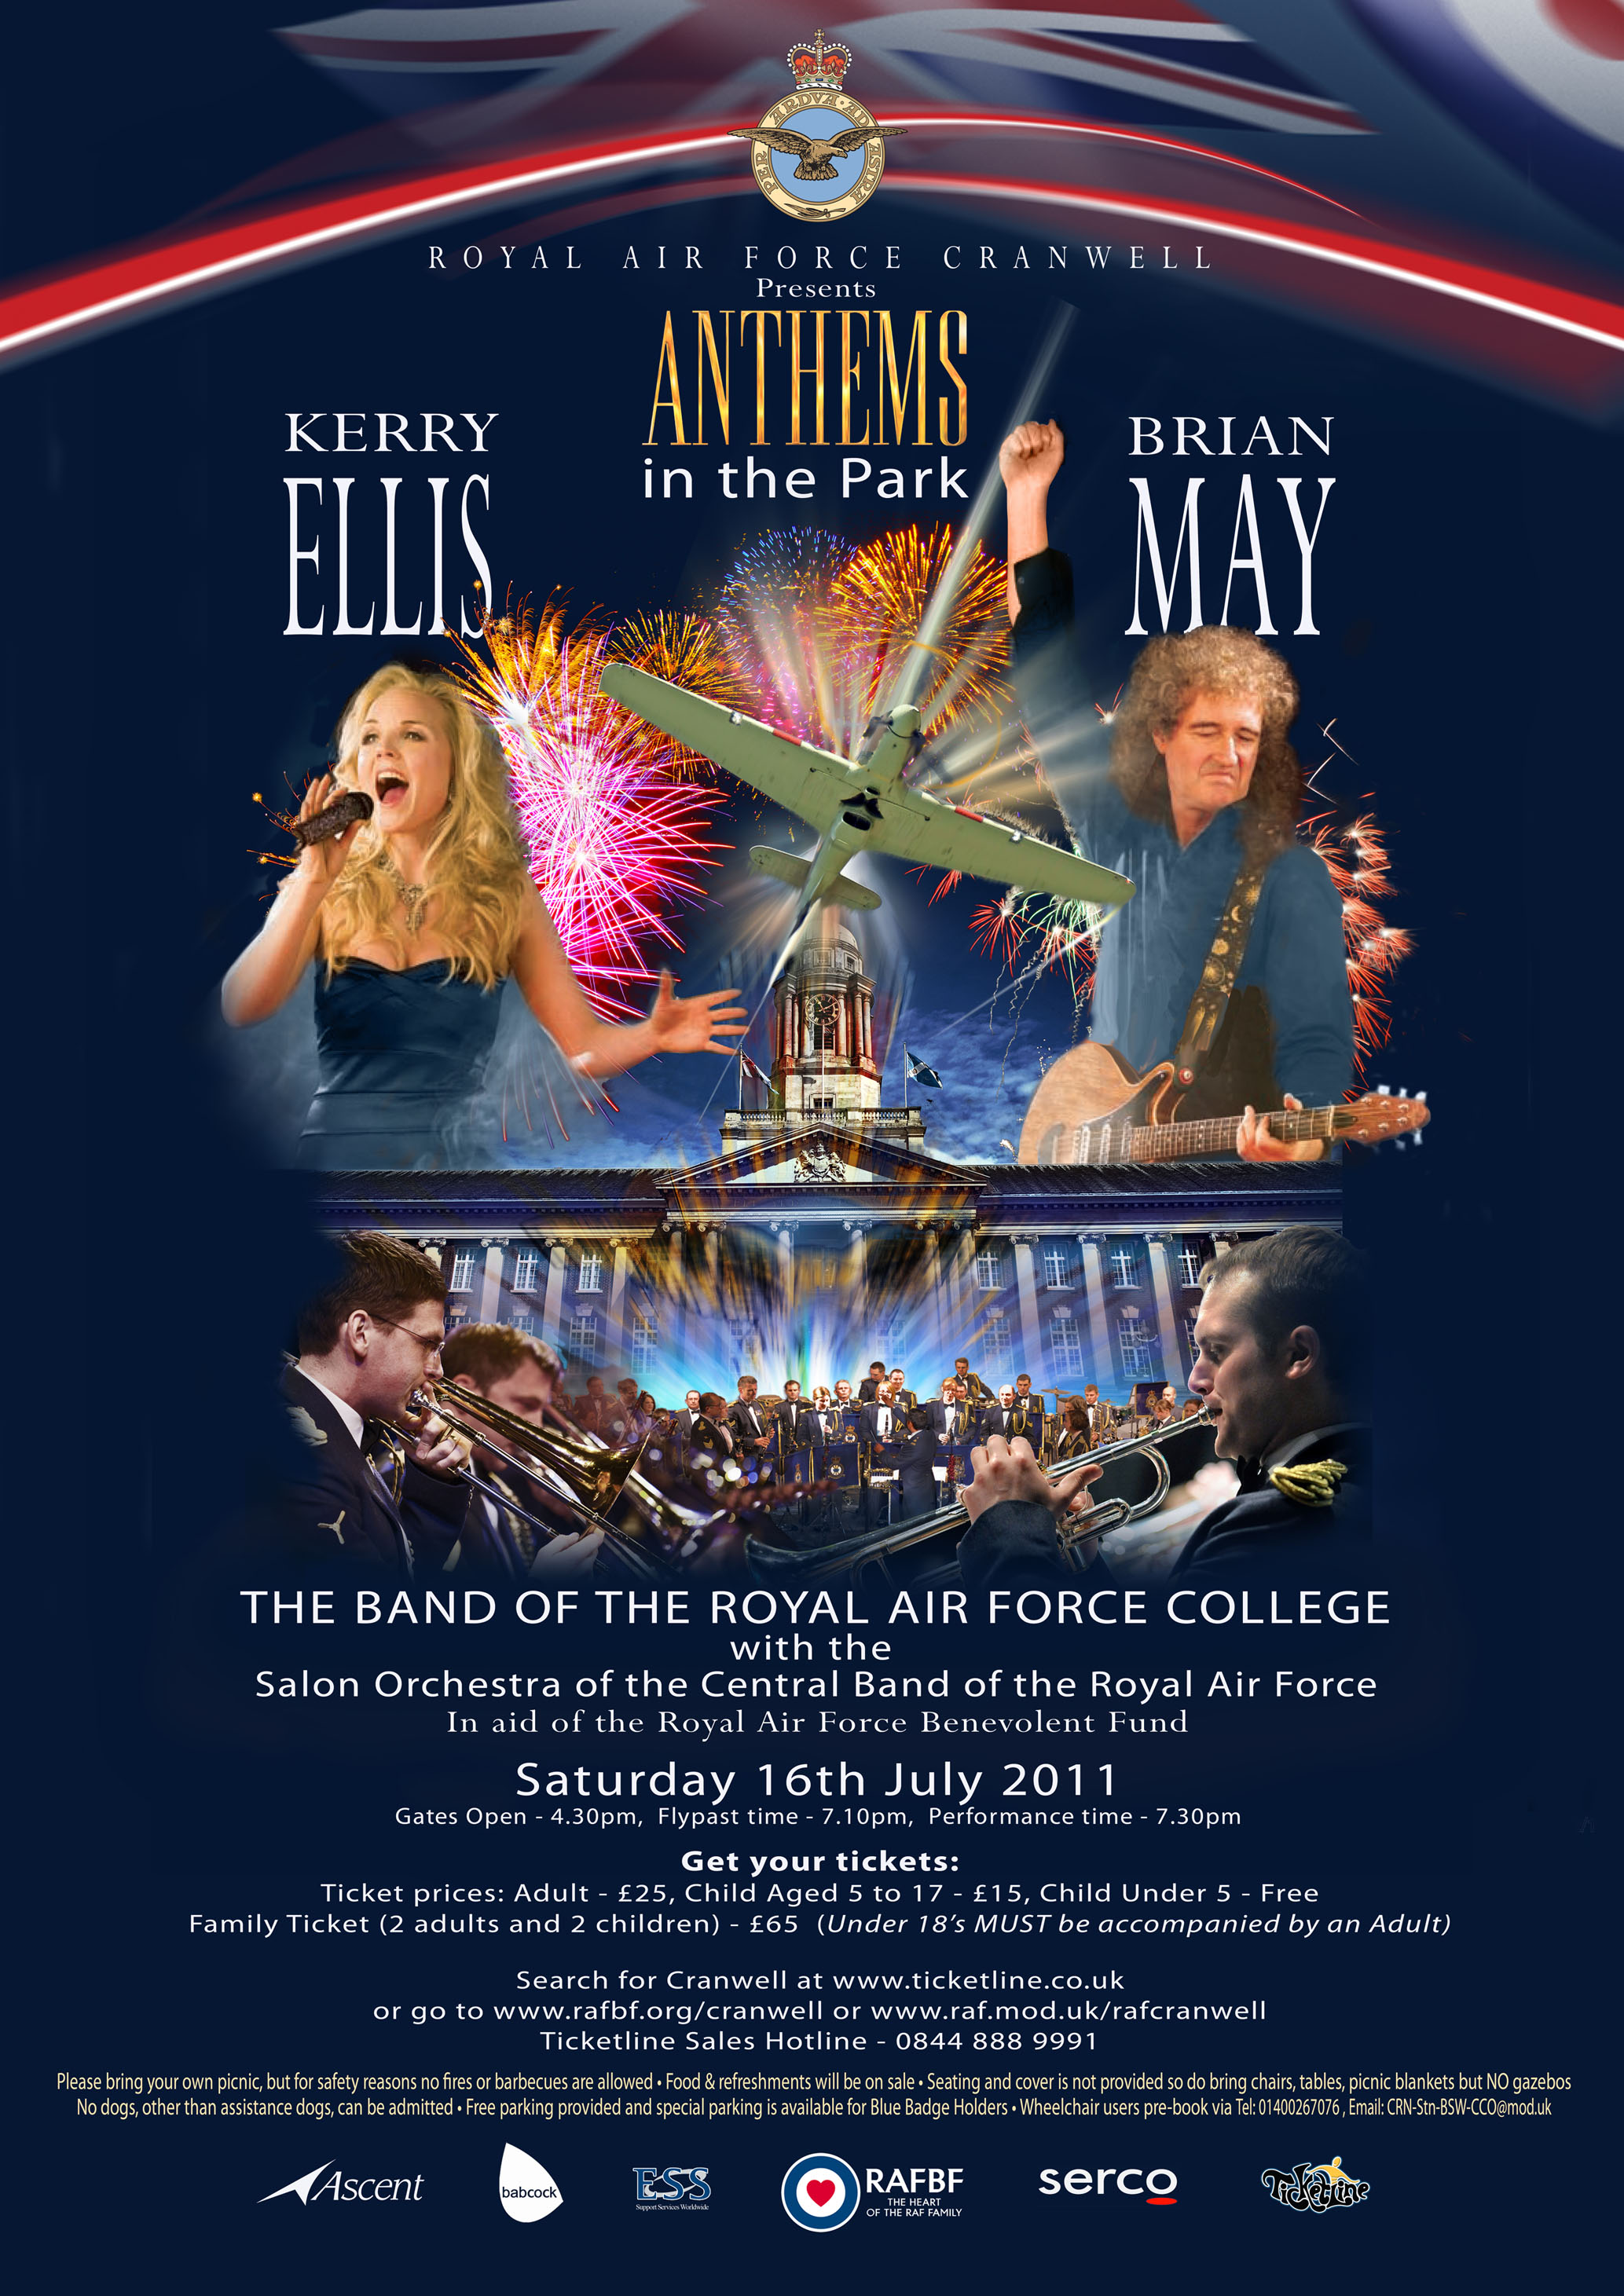 Brian May i Kerry Ellis plakat Anthems in the Park